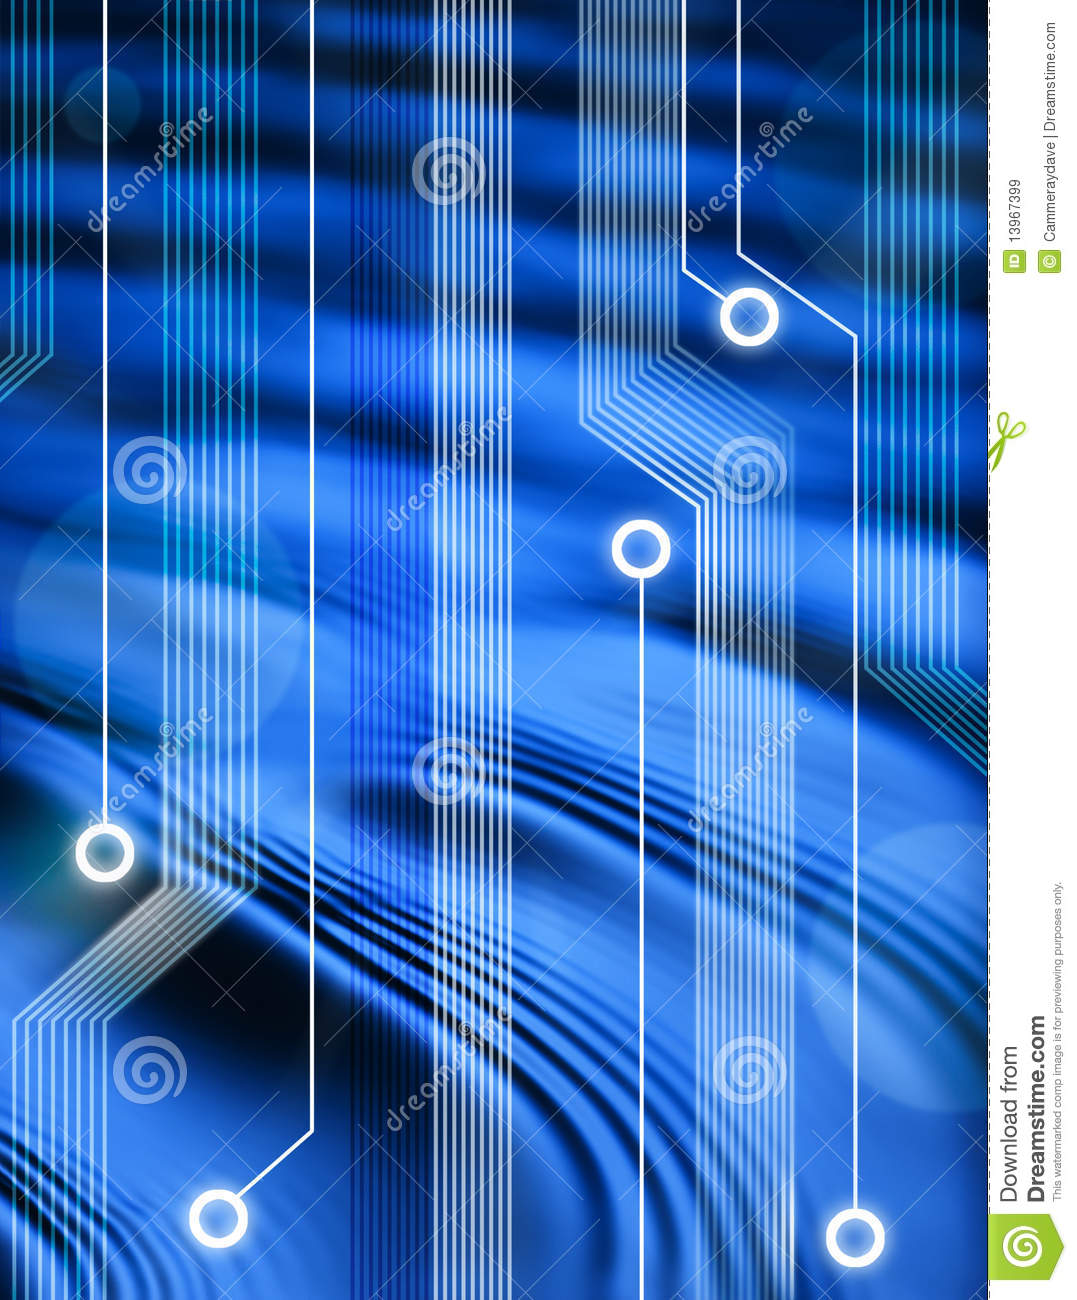 abstract network background - photo #33